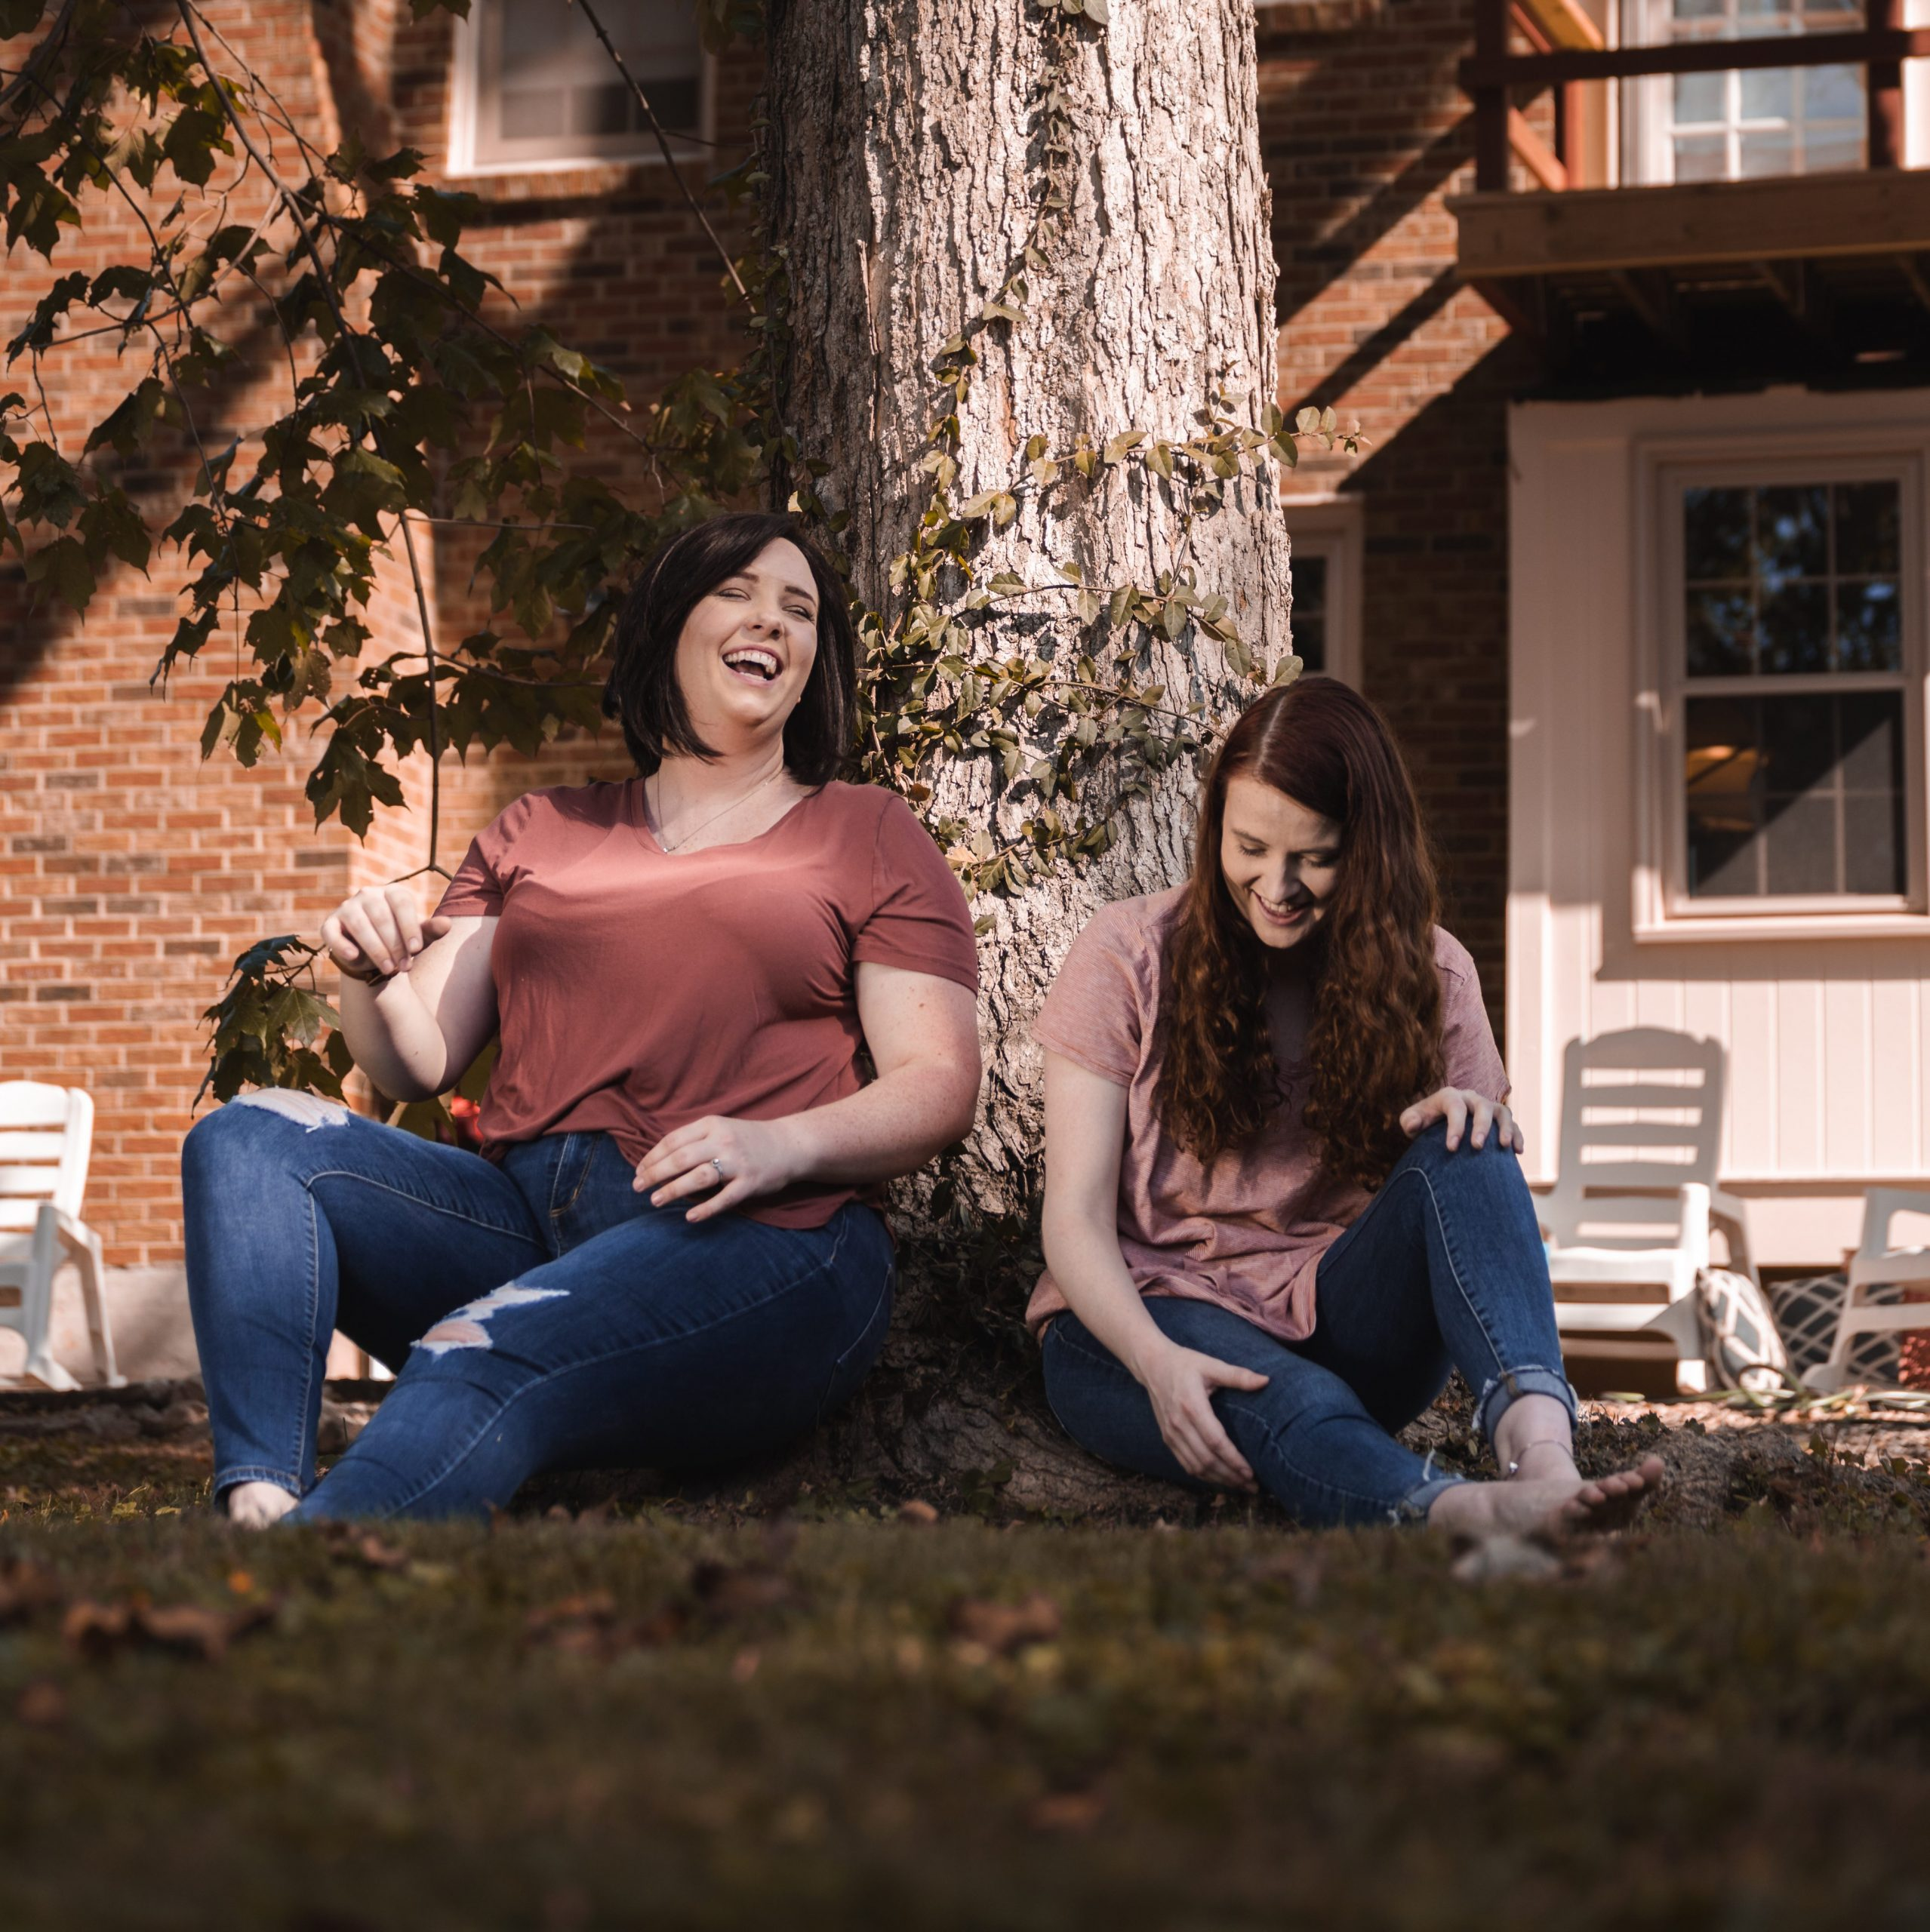 Two women, catherine ballard, and christina wherthey, sitting under a tree on the about crossmore marketing page.